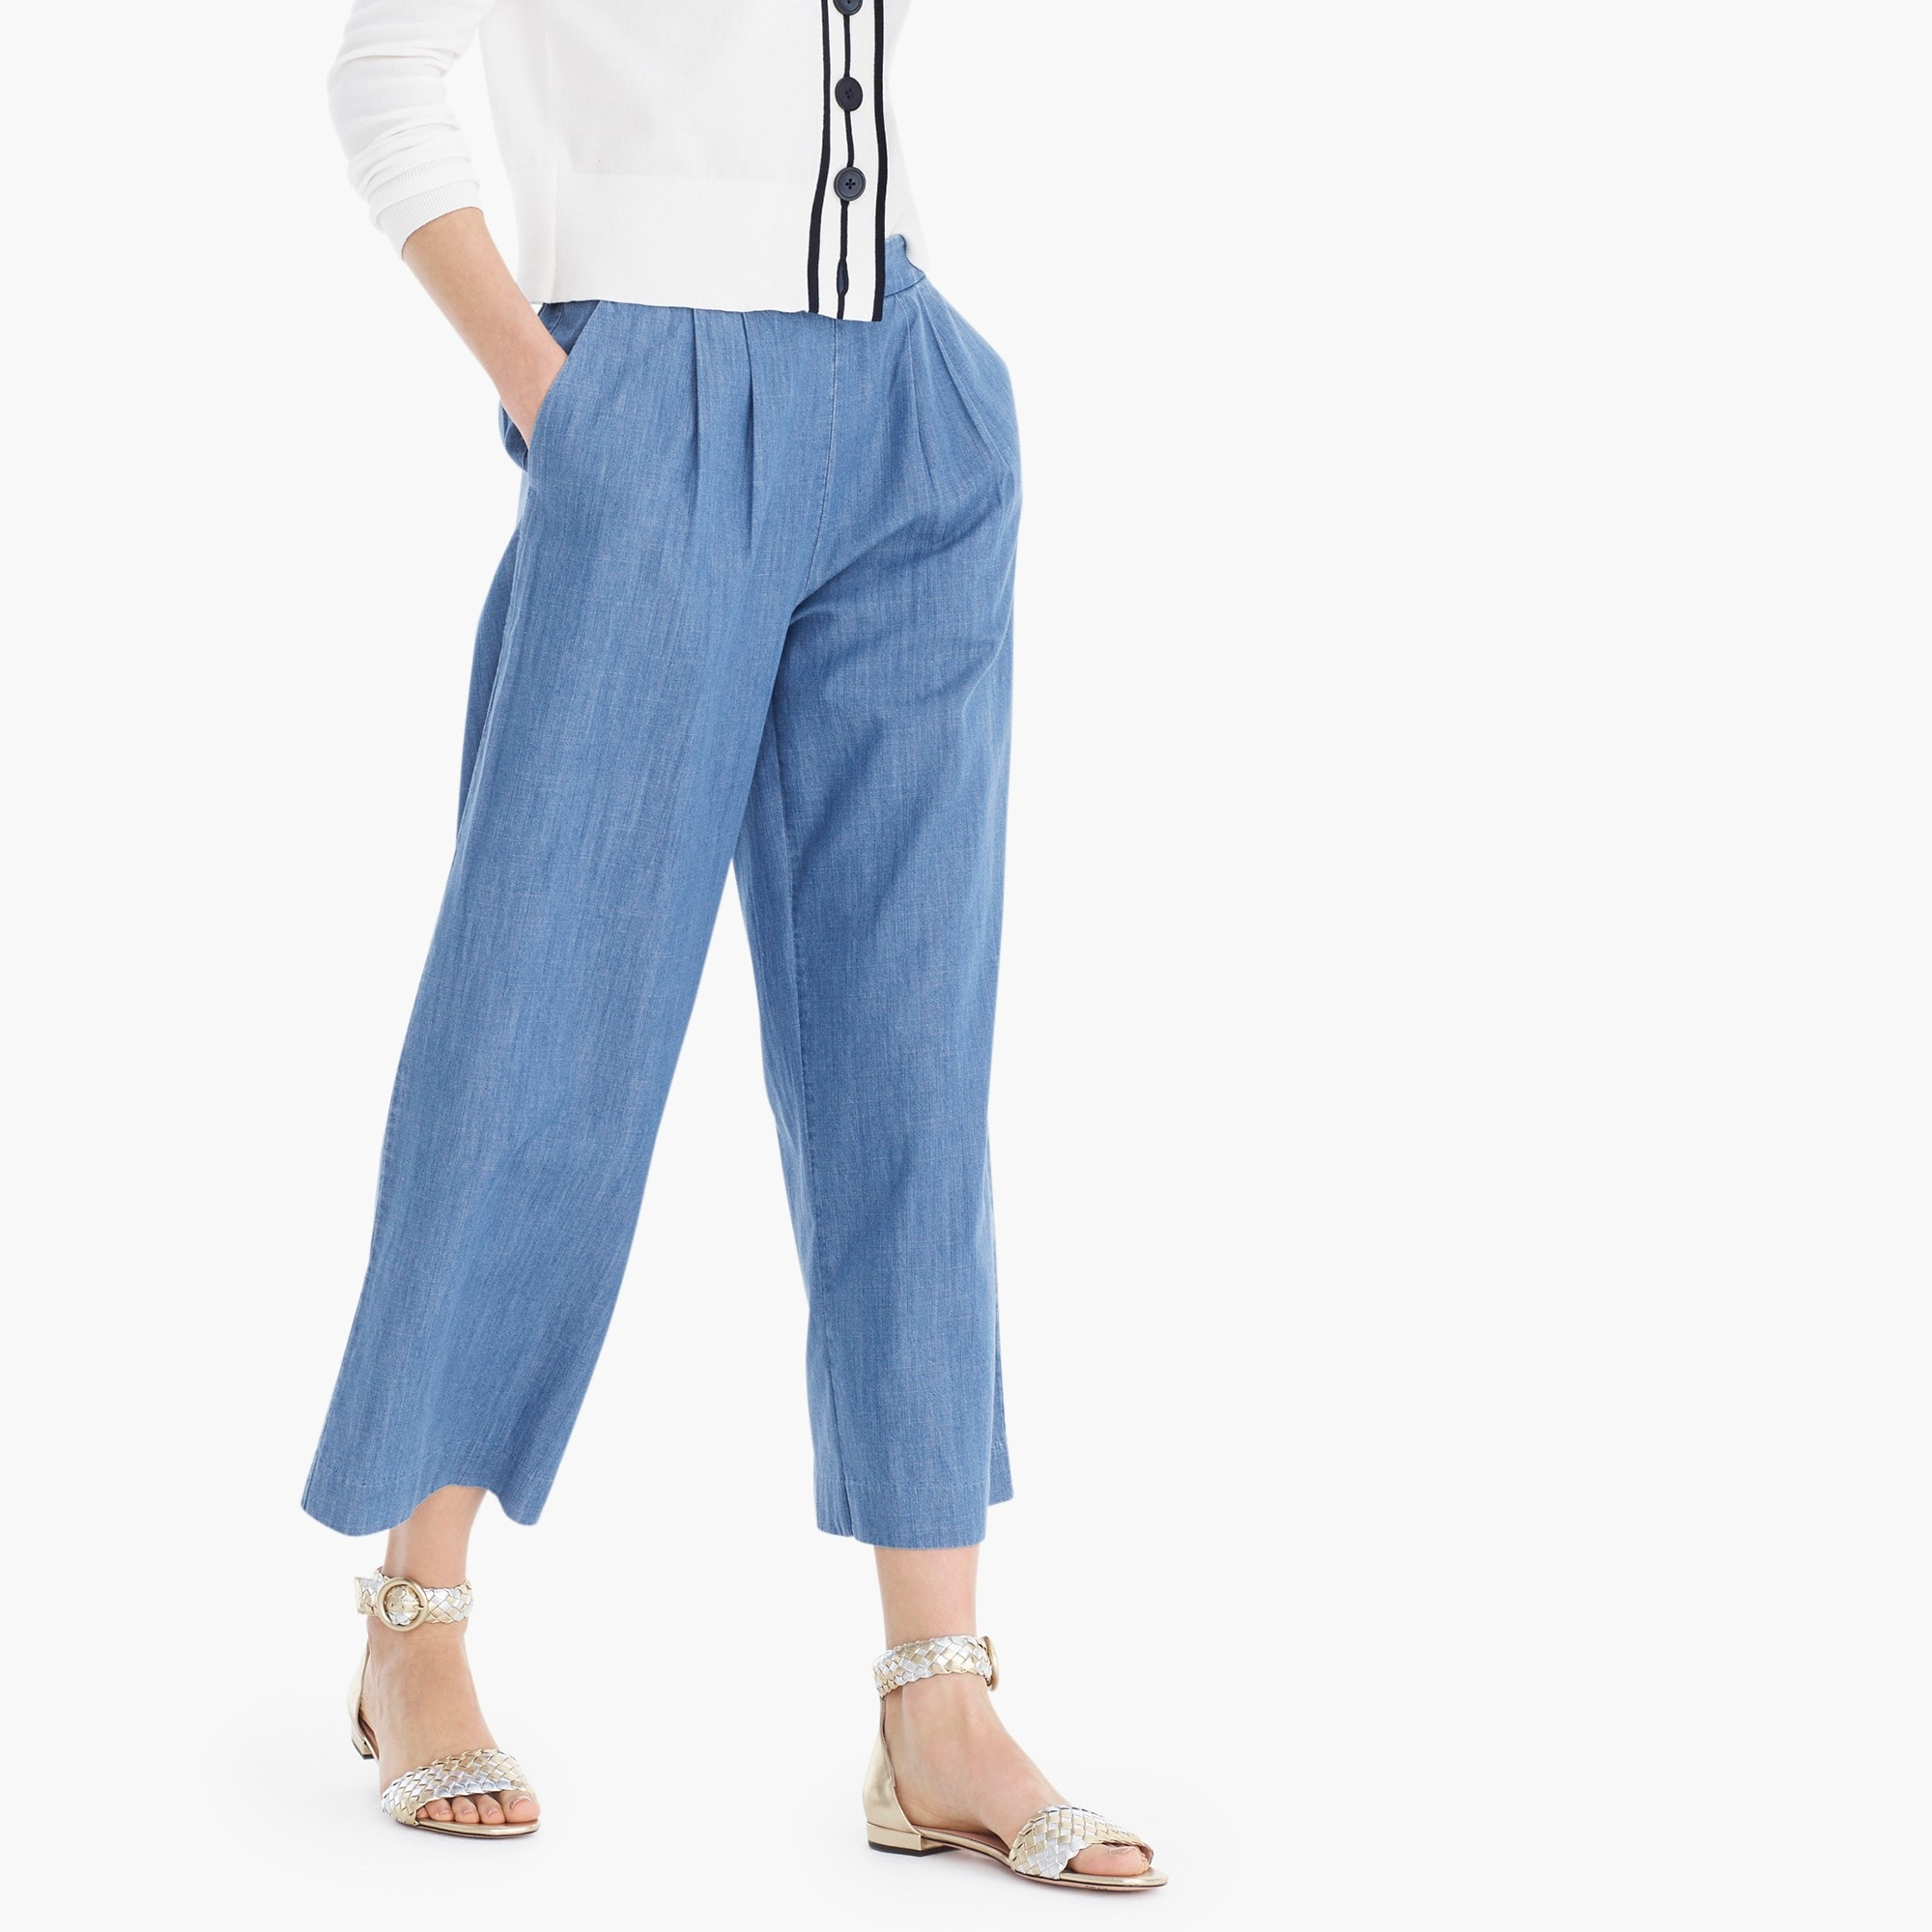 Wide-leg cropped chambray pant women new arrivals c